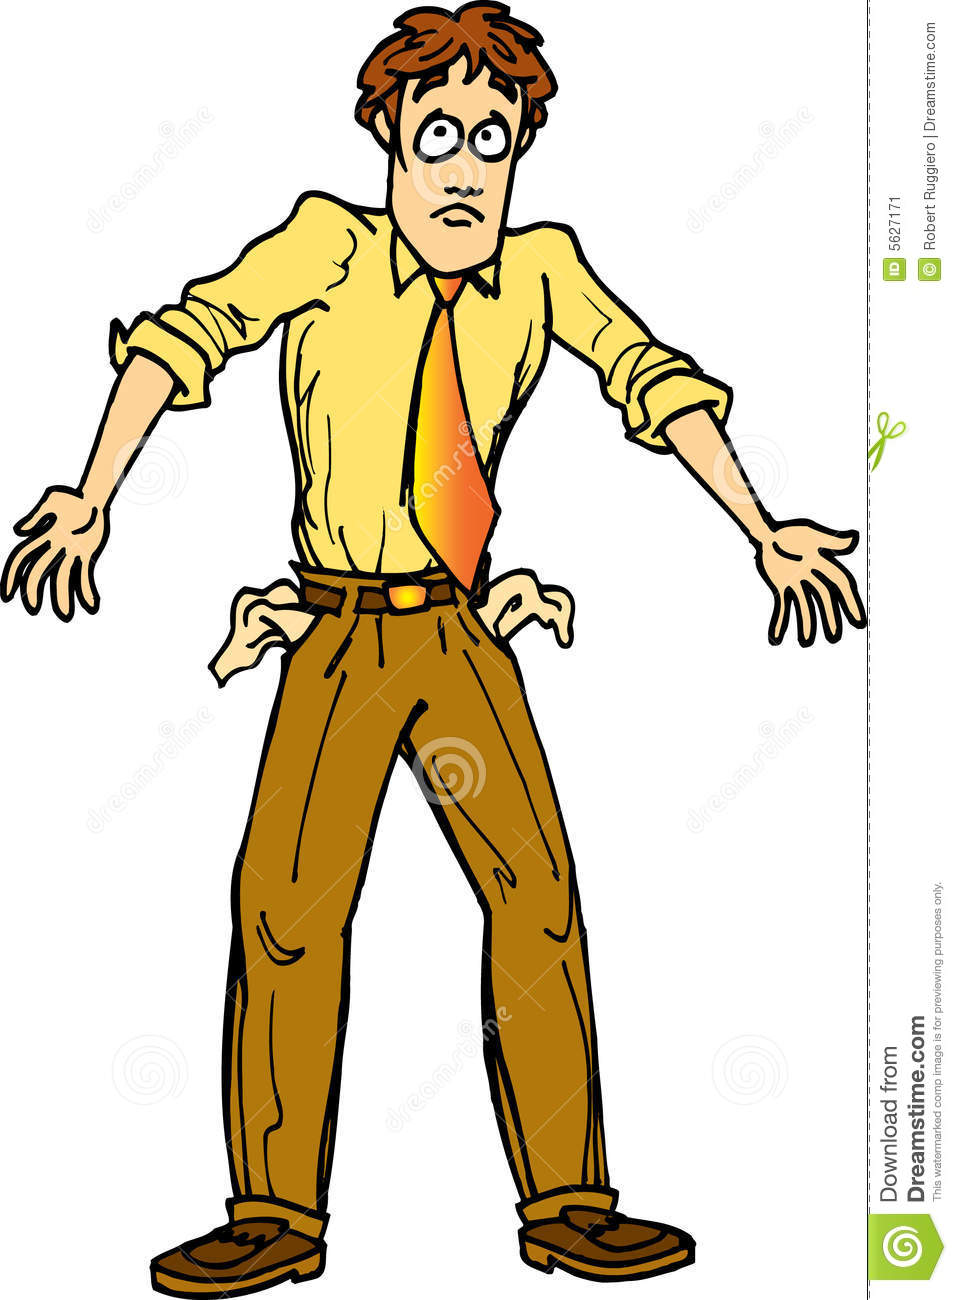 Poor People Clipart Poor Man With Pockets Out